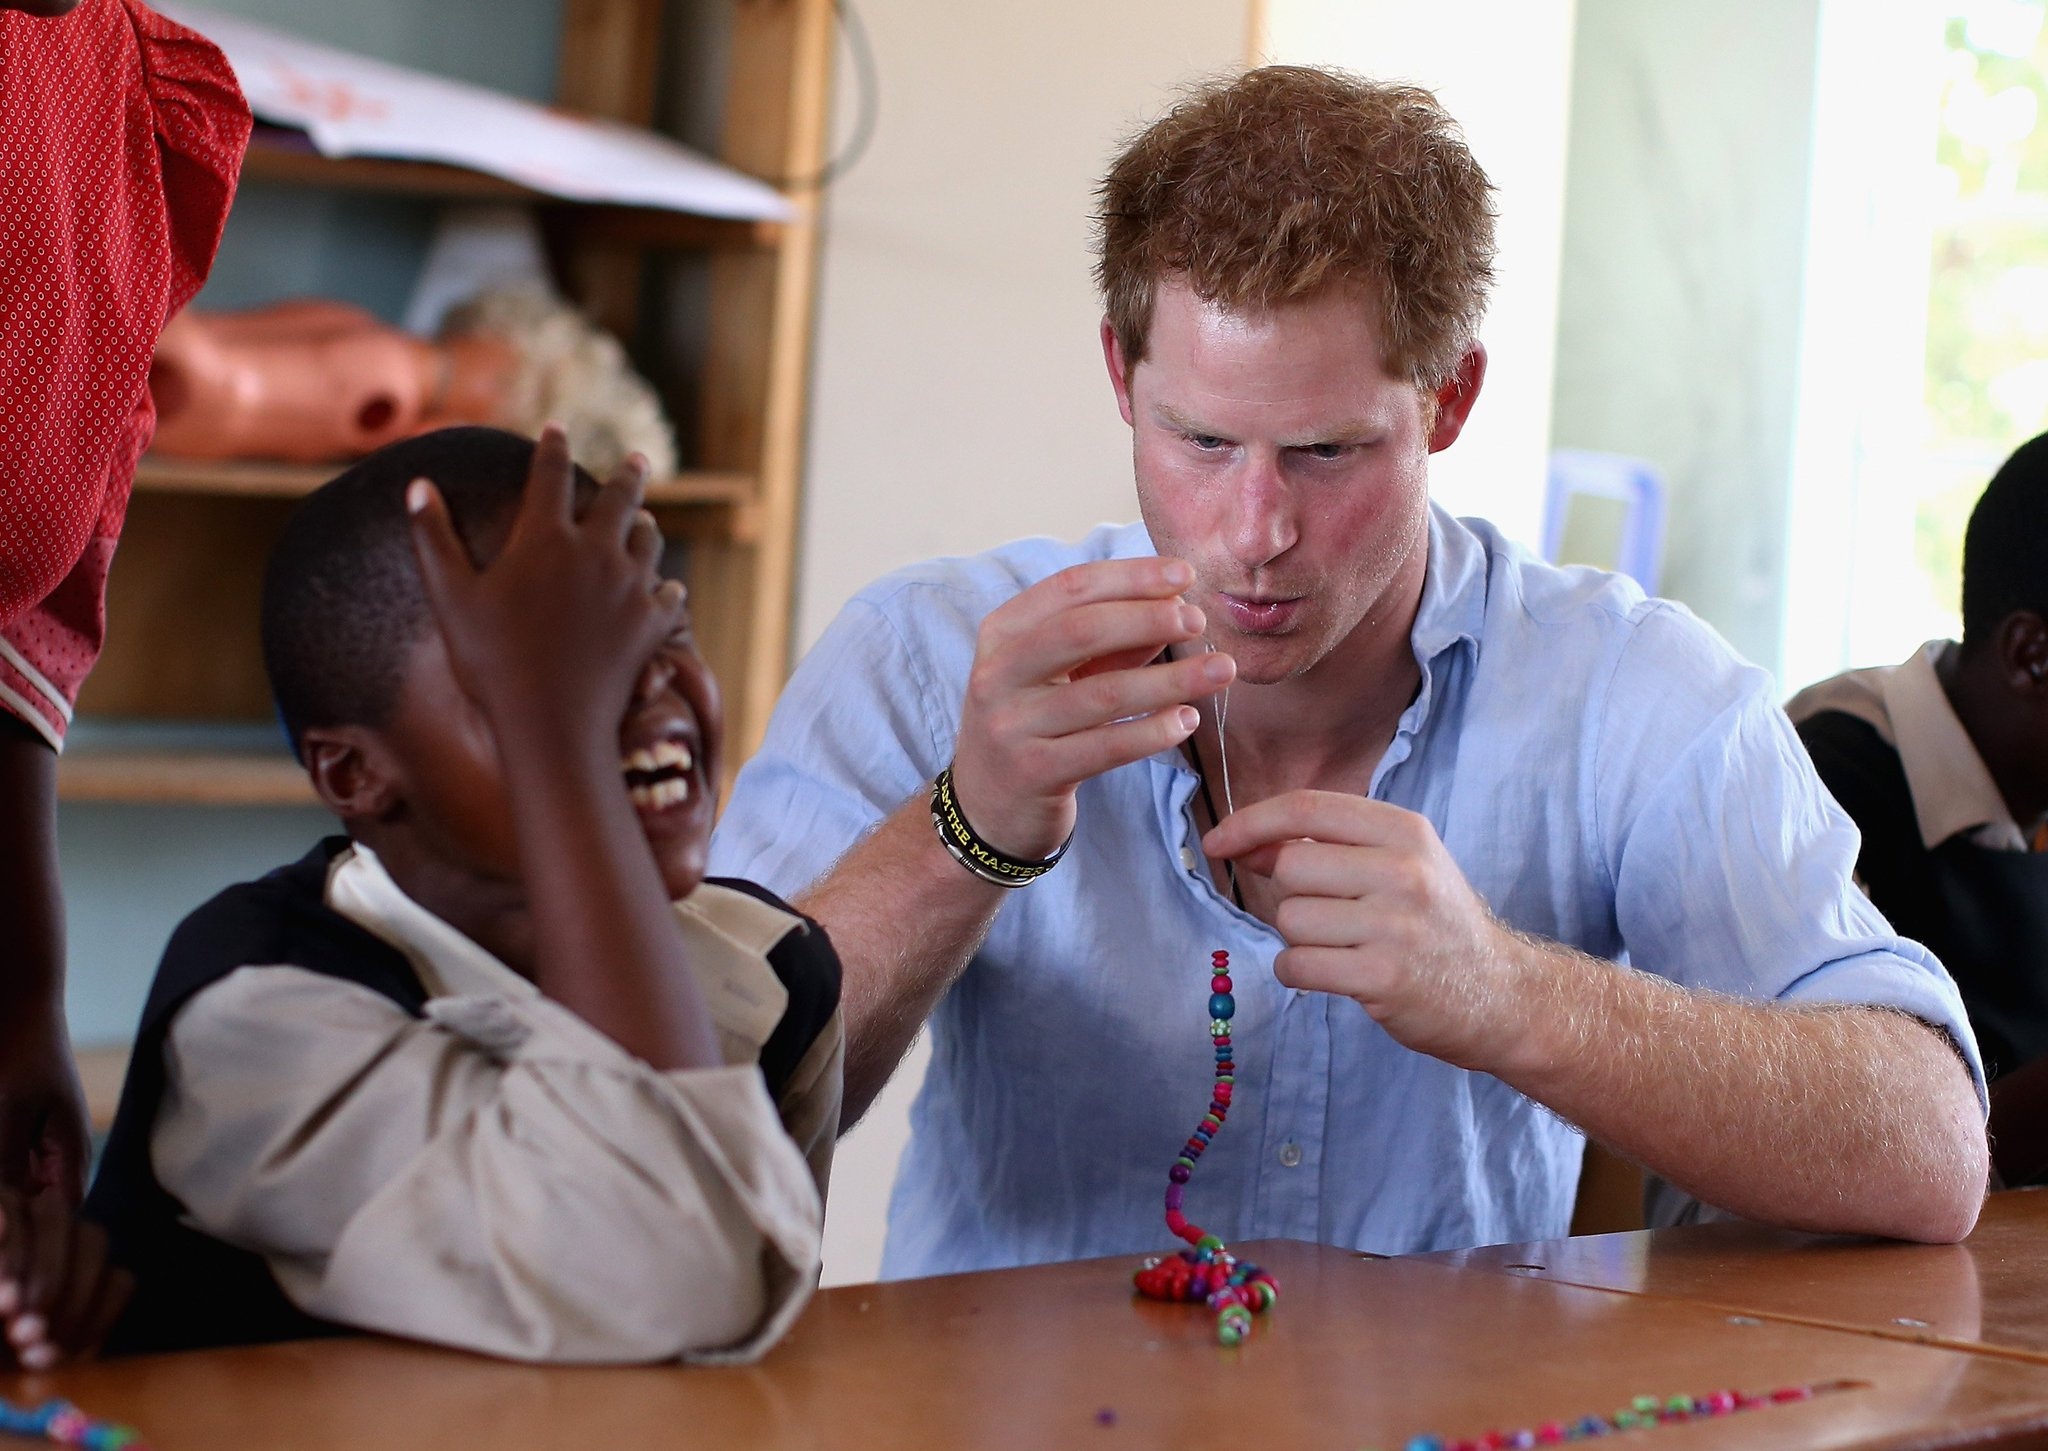 Wishing our Co-Founding Patron Prince Harry a very happy birthday!